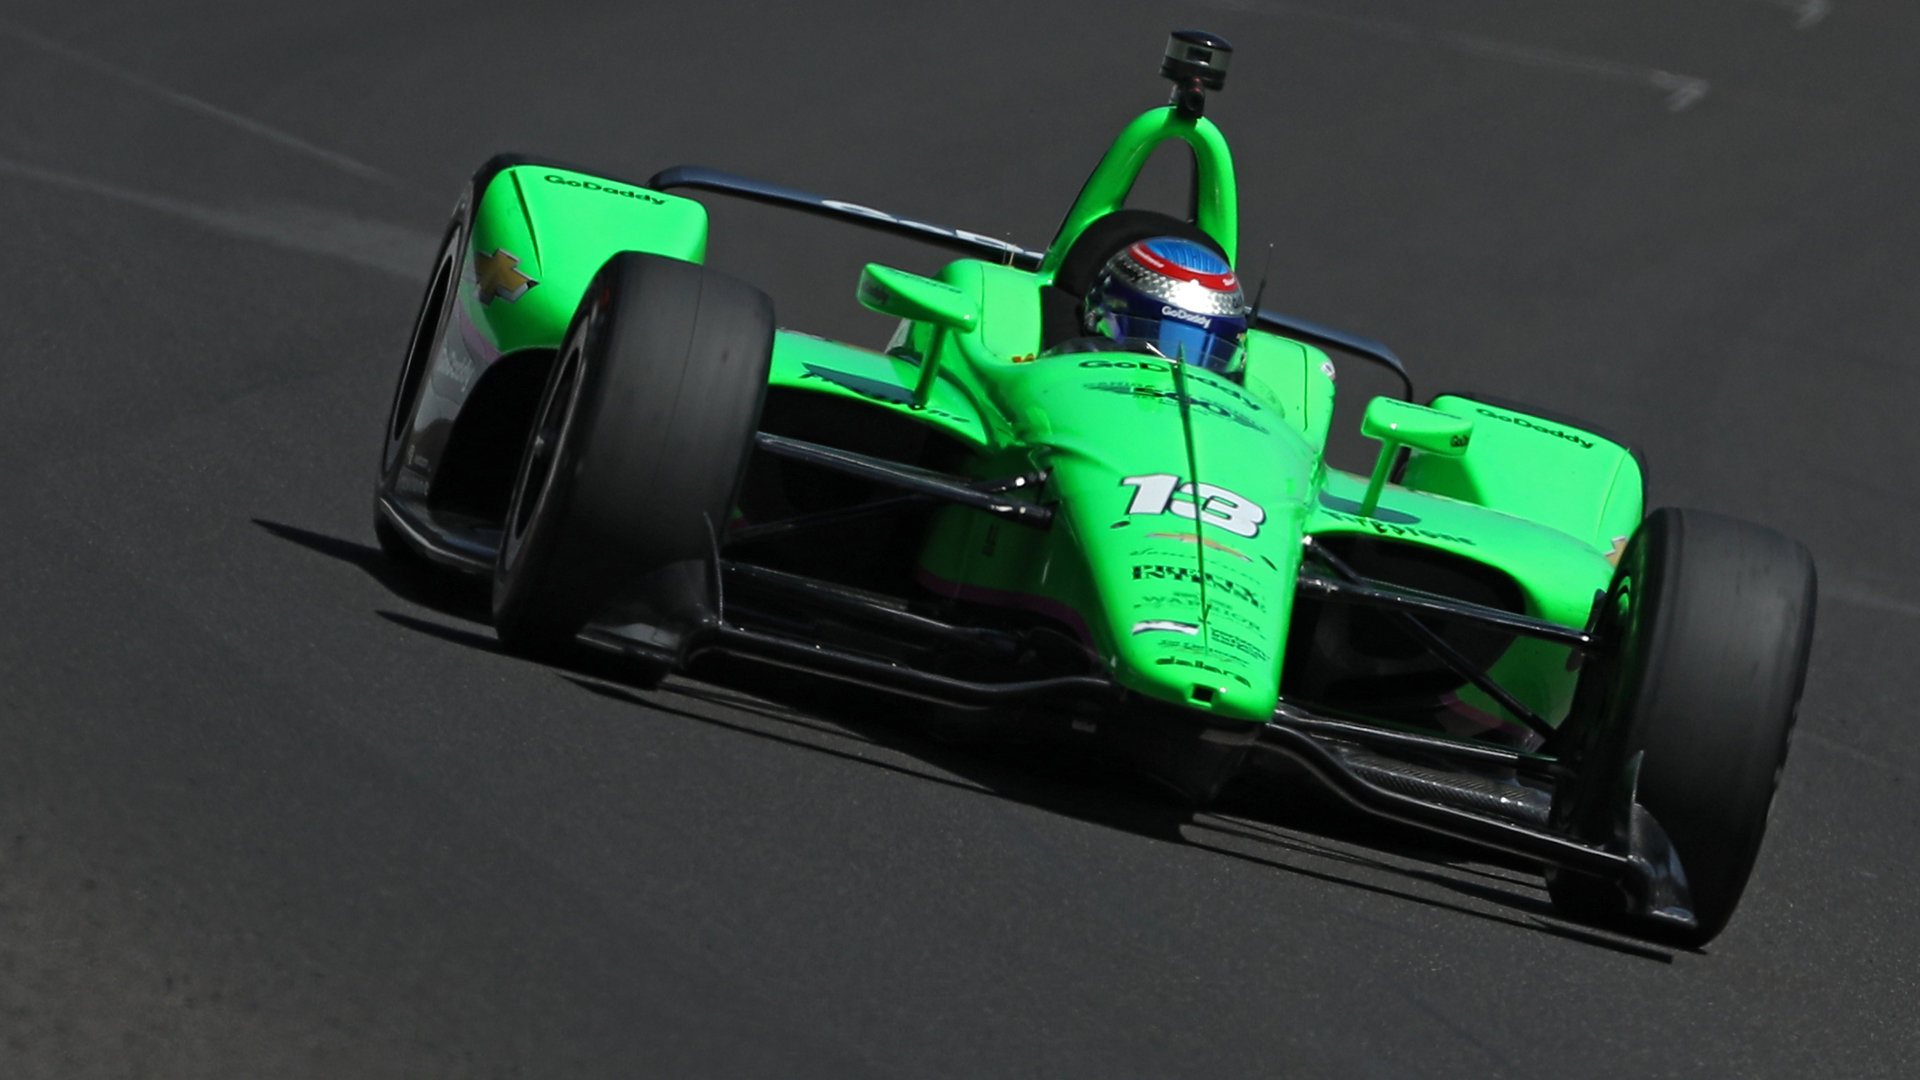 Indy 500 preview: Danica Patrick, Helio Castroneves, Ed Carpenter